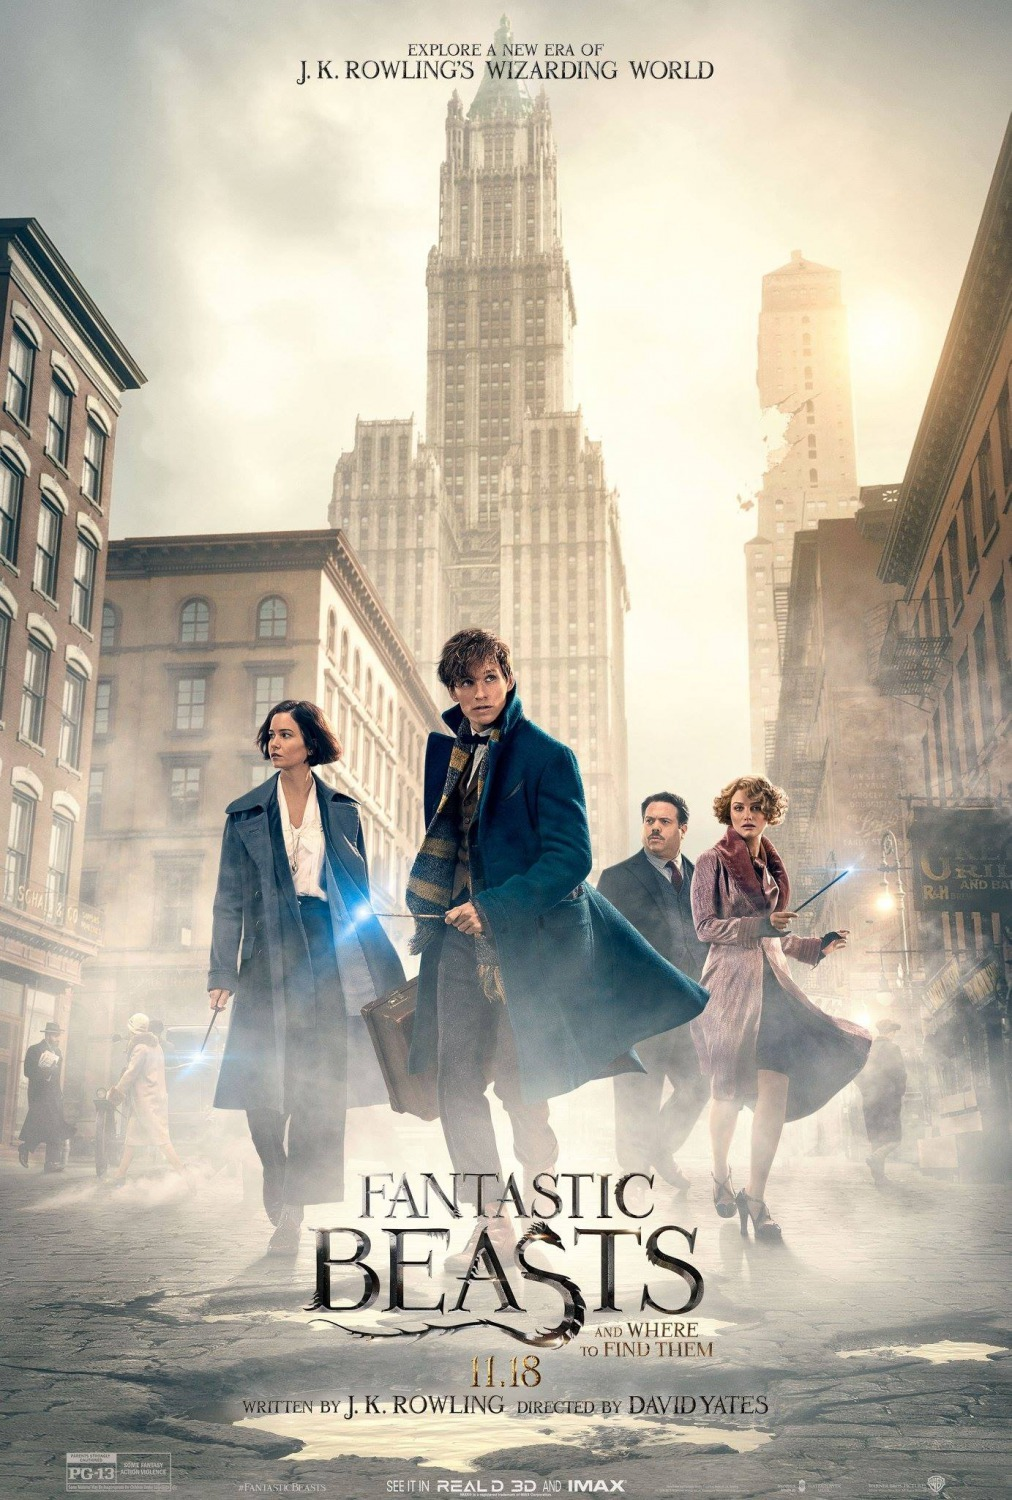 Fantastic Beasts and Where to Find Them(2016) - Cartelera